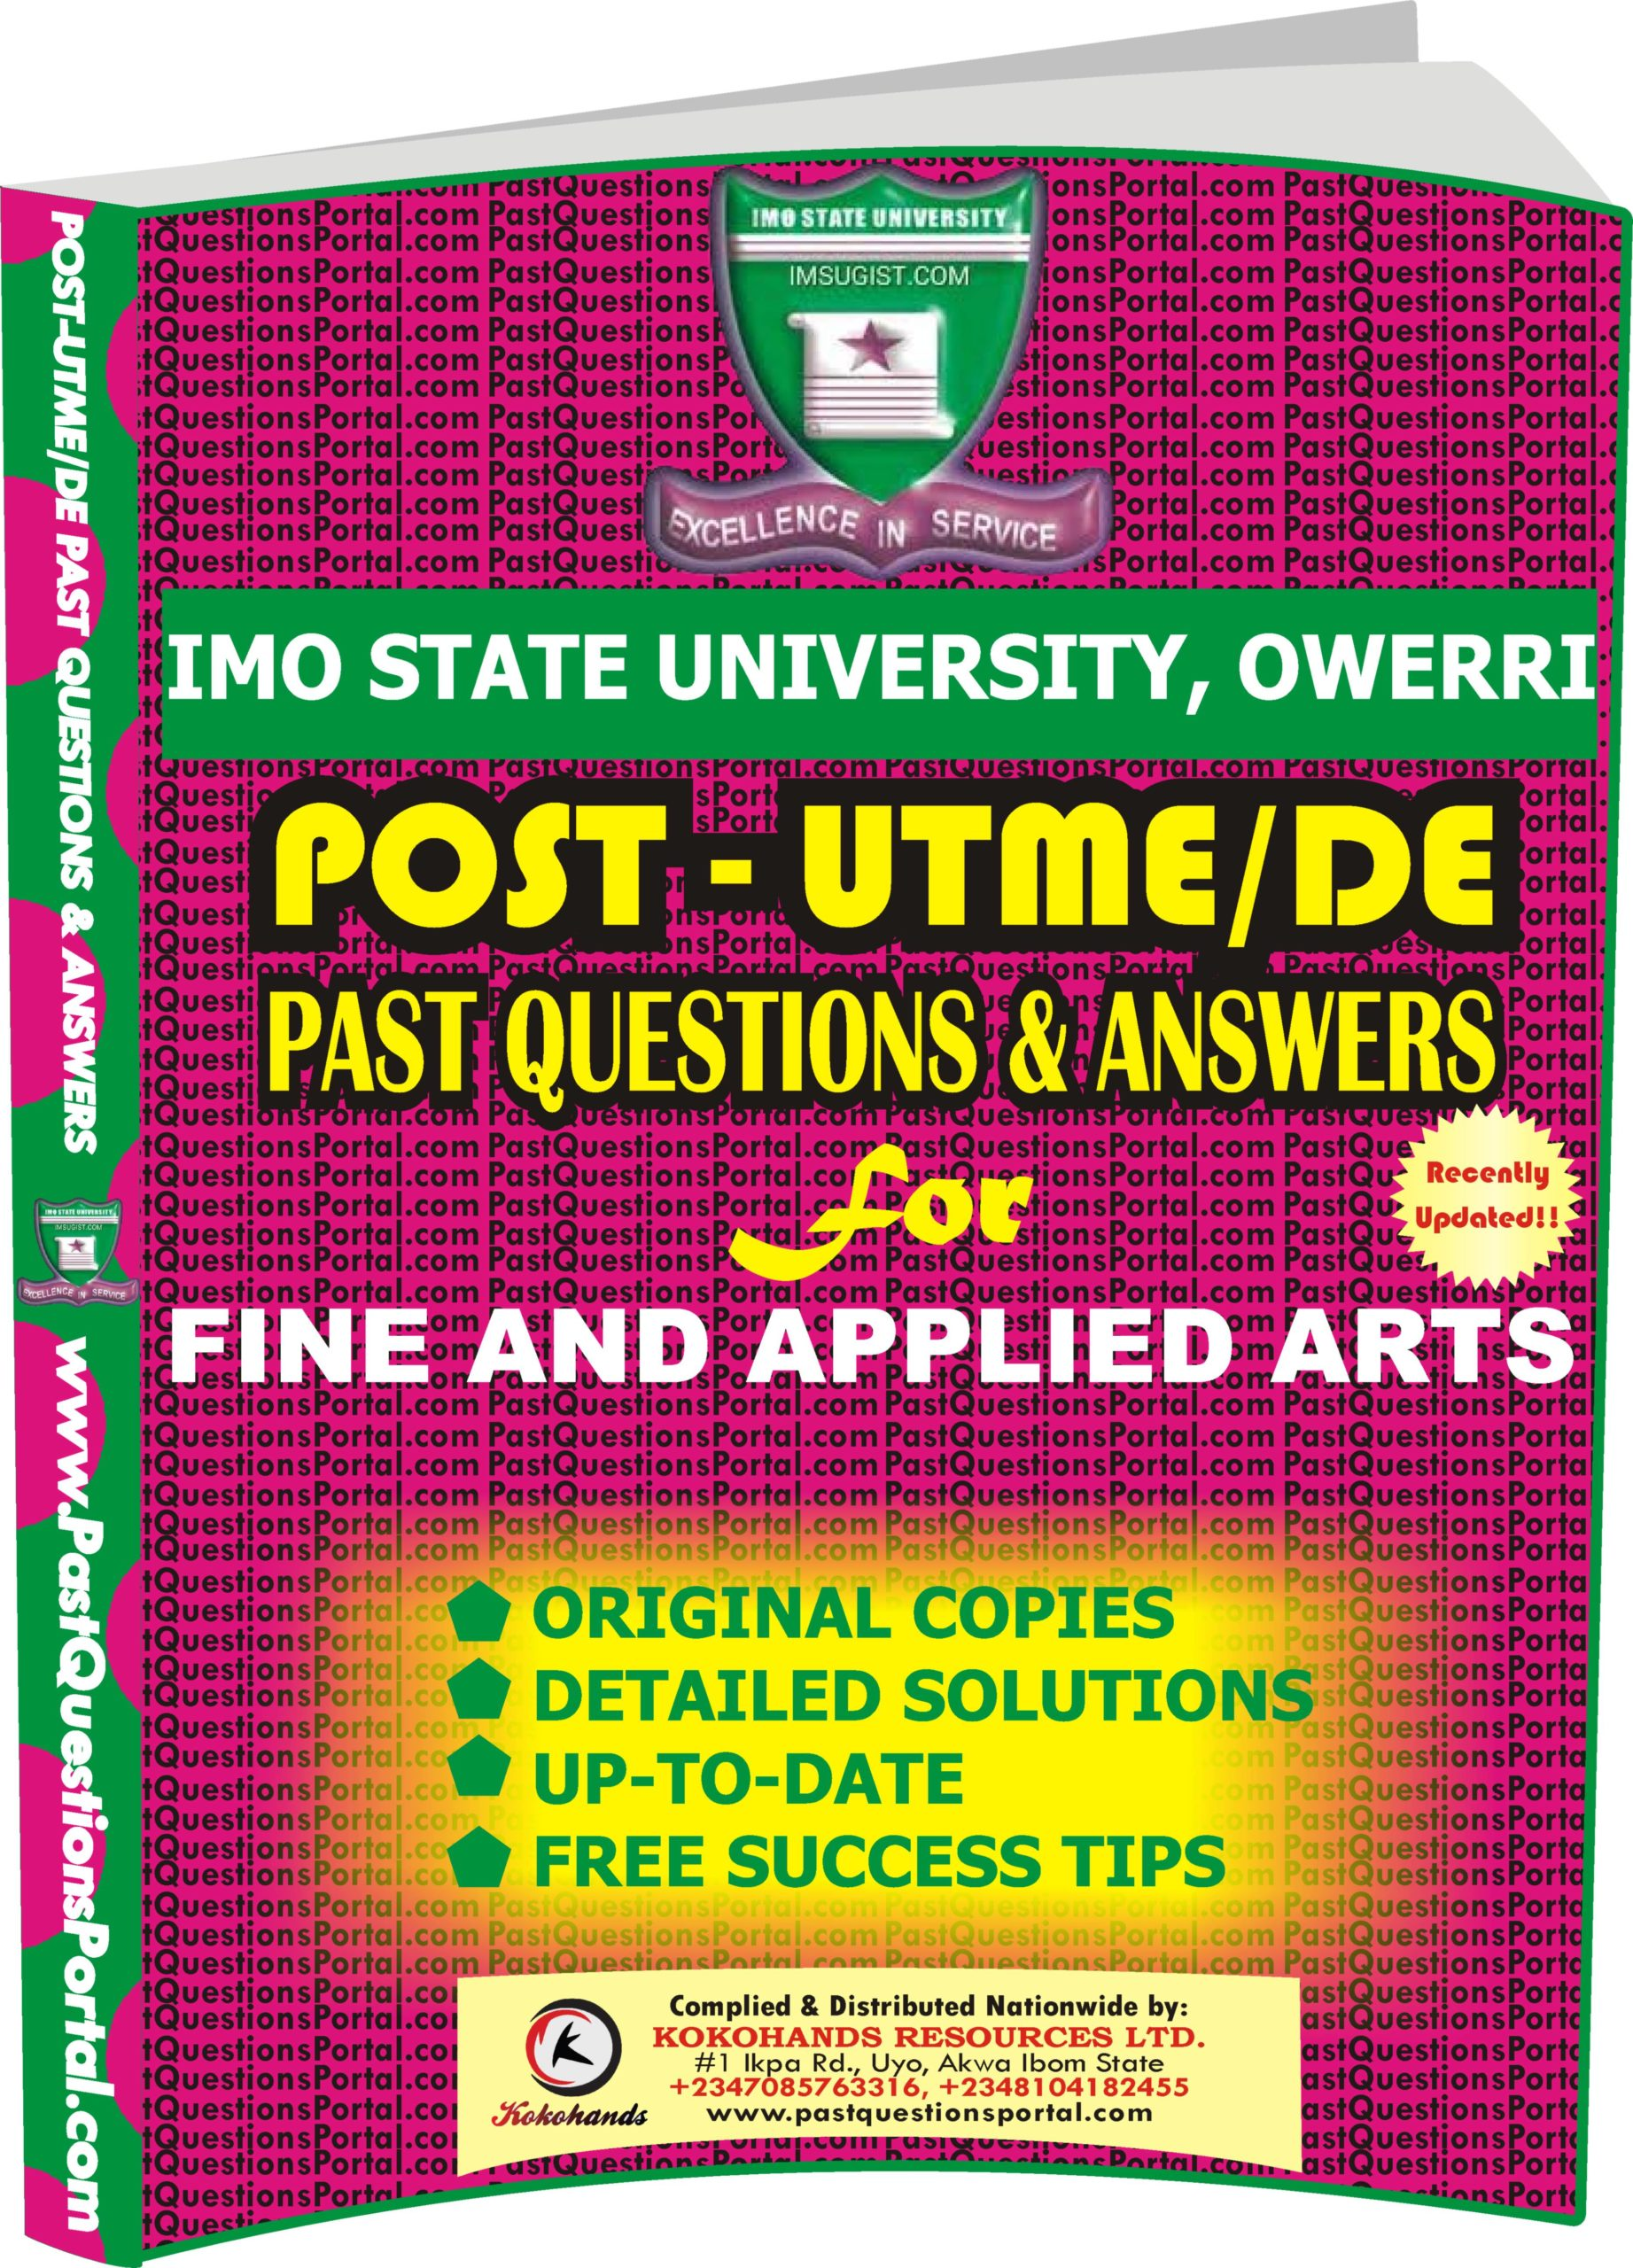 IMSU Post UTME Past Questions for FINE AND APPLIED ARTS